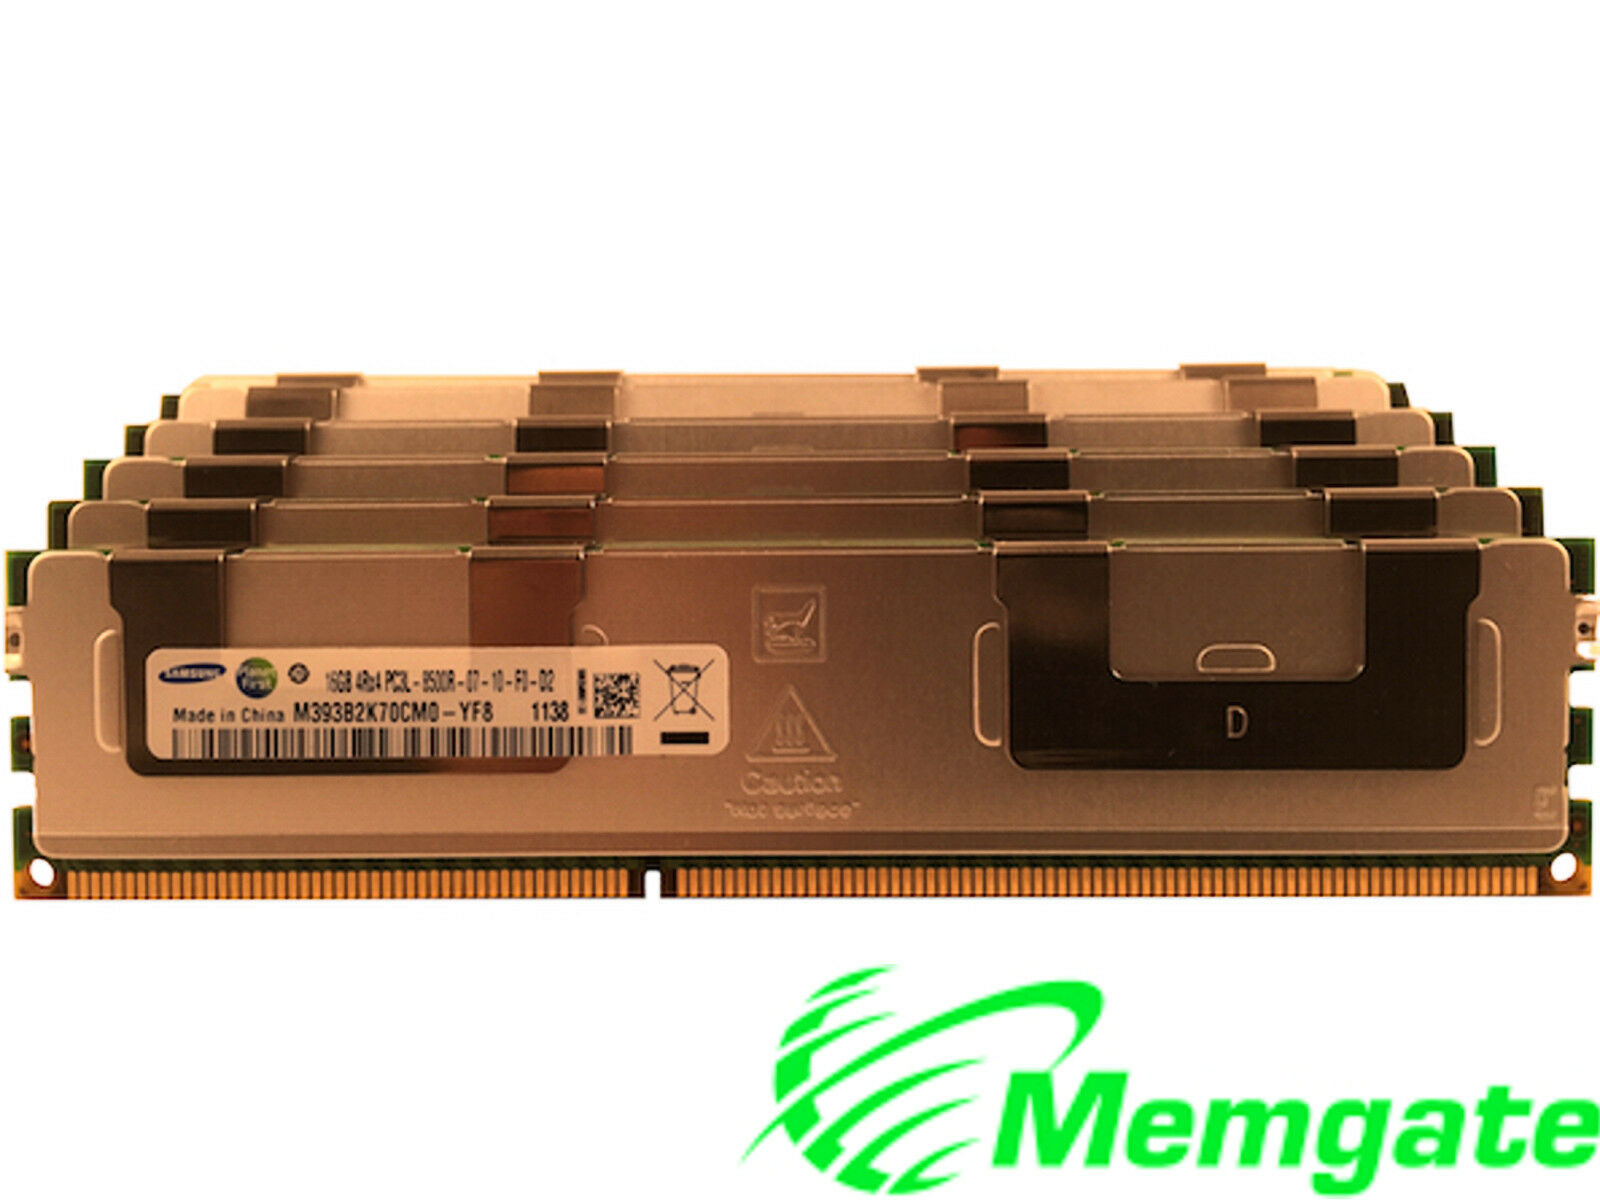 64GB (4 x16GB) Memory For Dell PowerEdge R520 R5500 R610 R620 R710 R715. Buy it now for 107.70